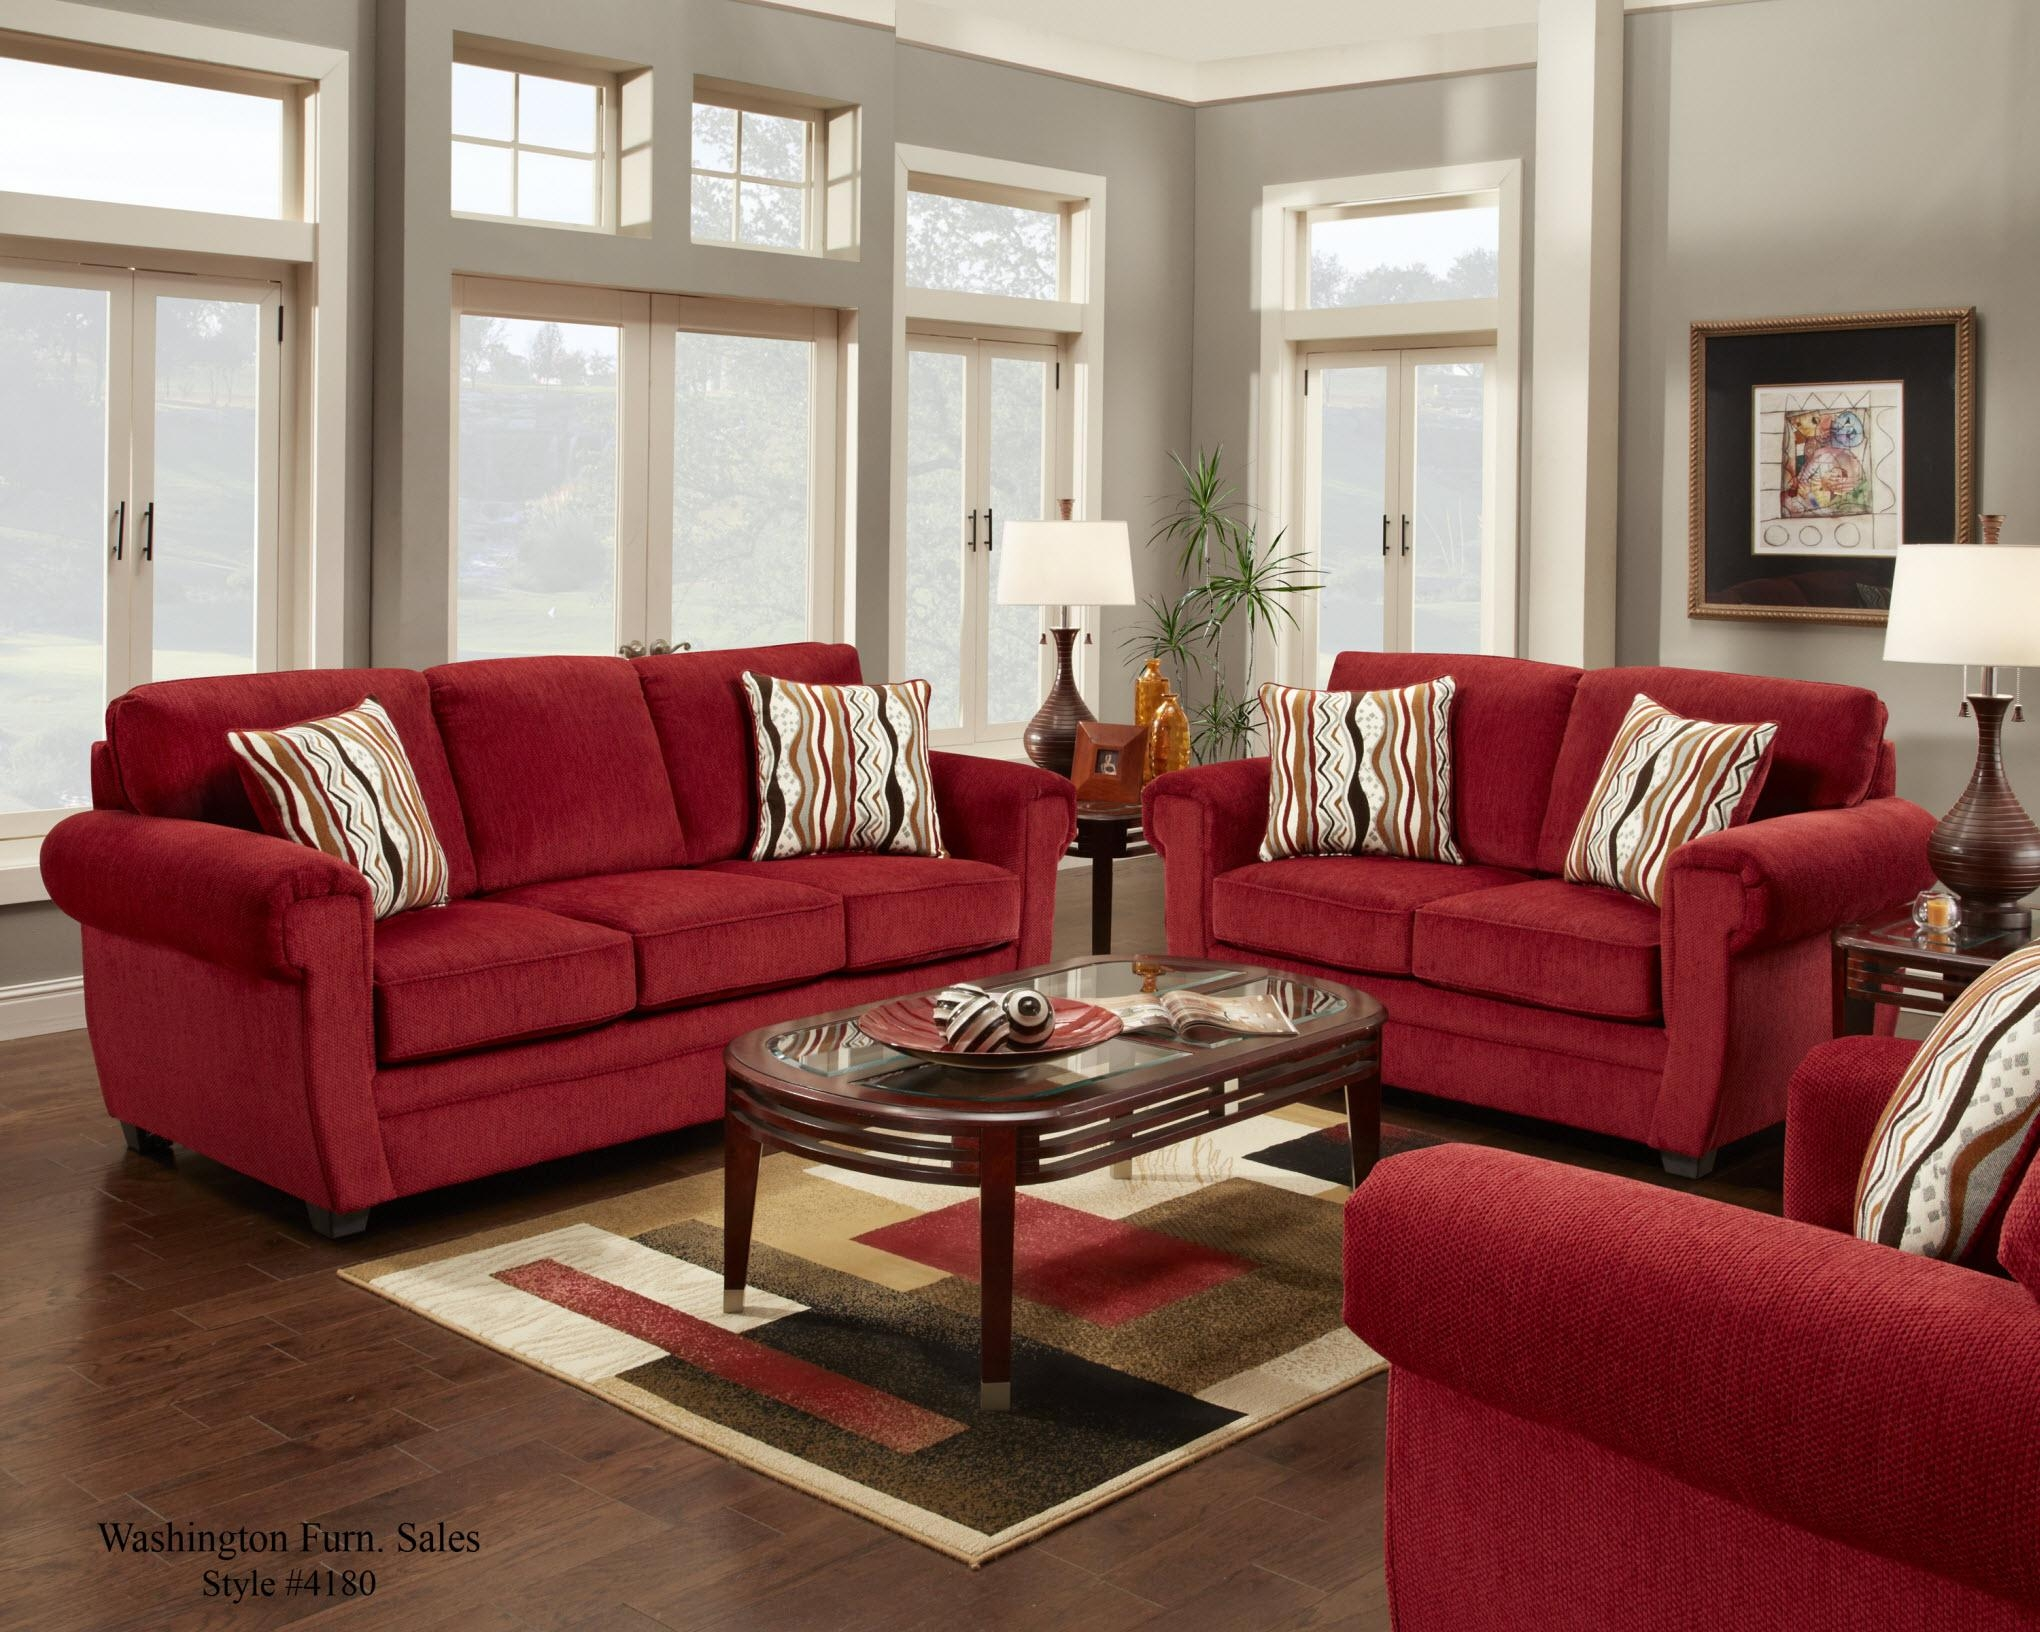 Black and red sofa set designs Red sofa ideas